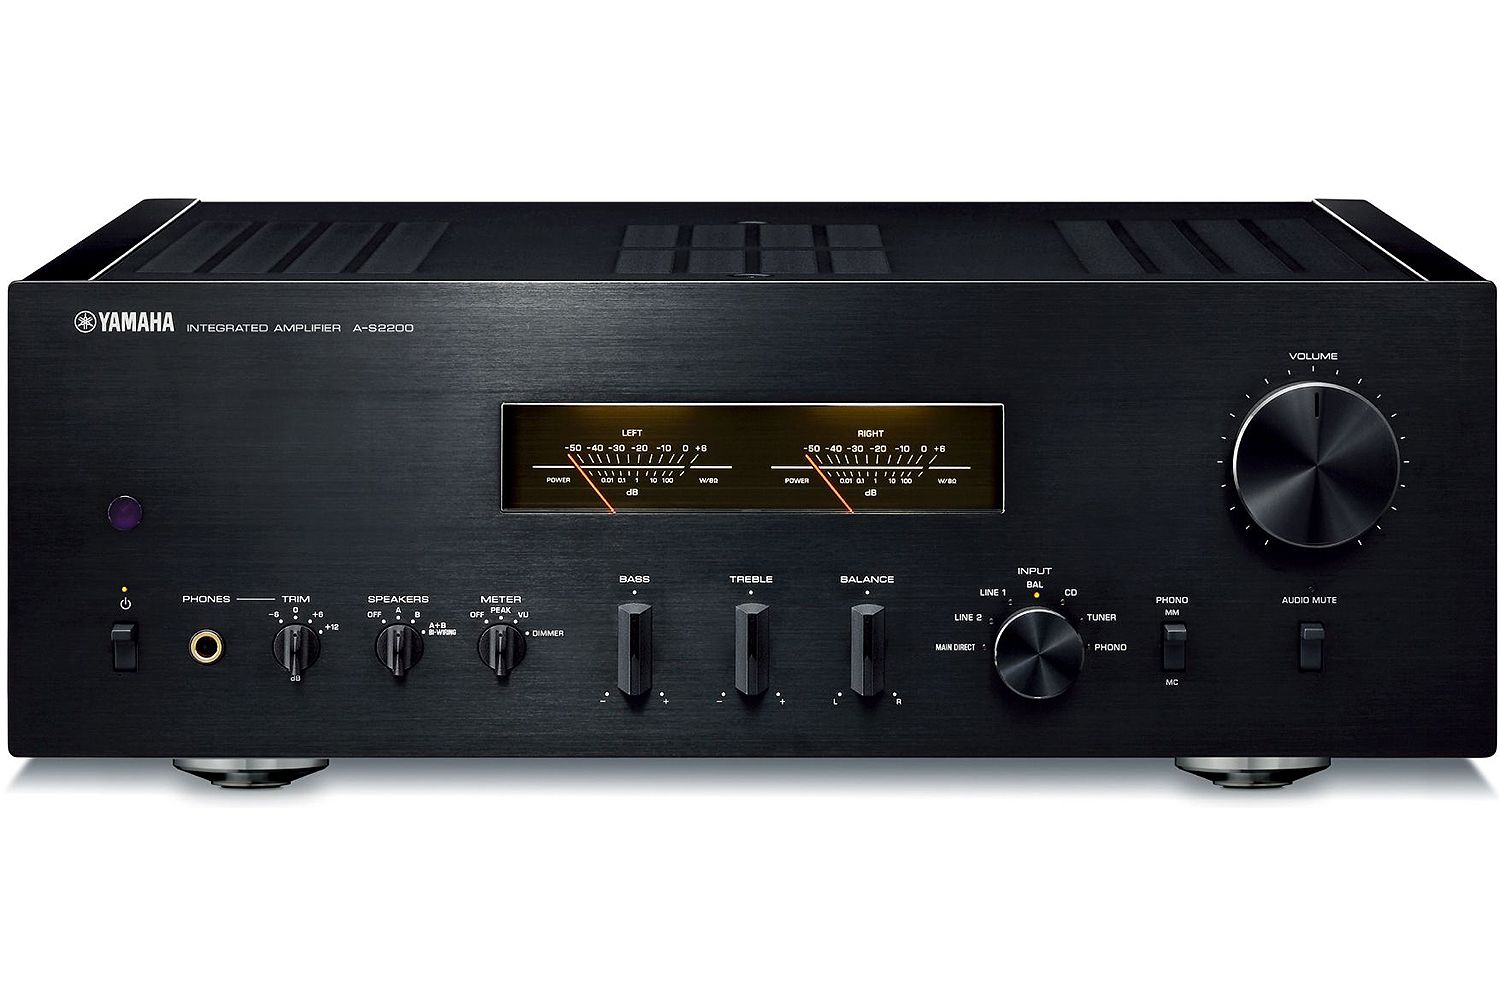 Yamaha Piano Black Integrated Amplifier - A-S2200BL